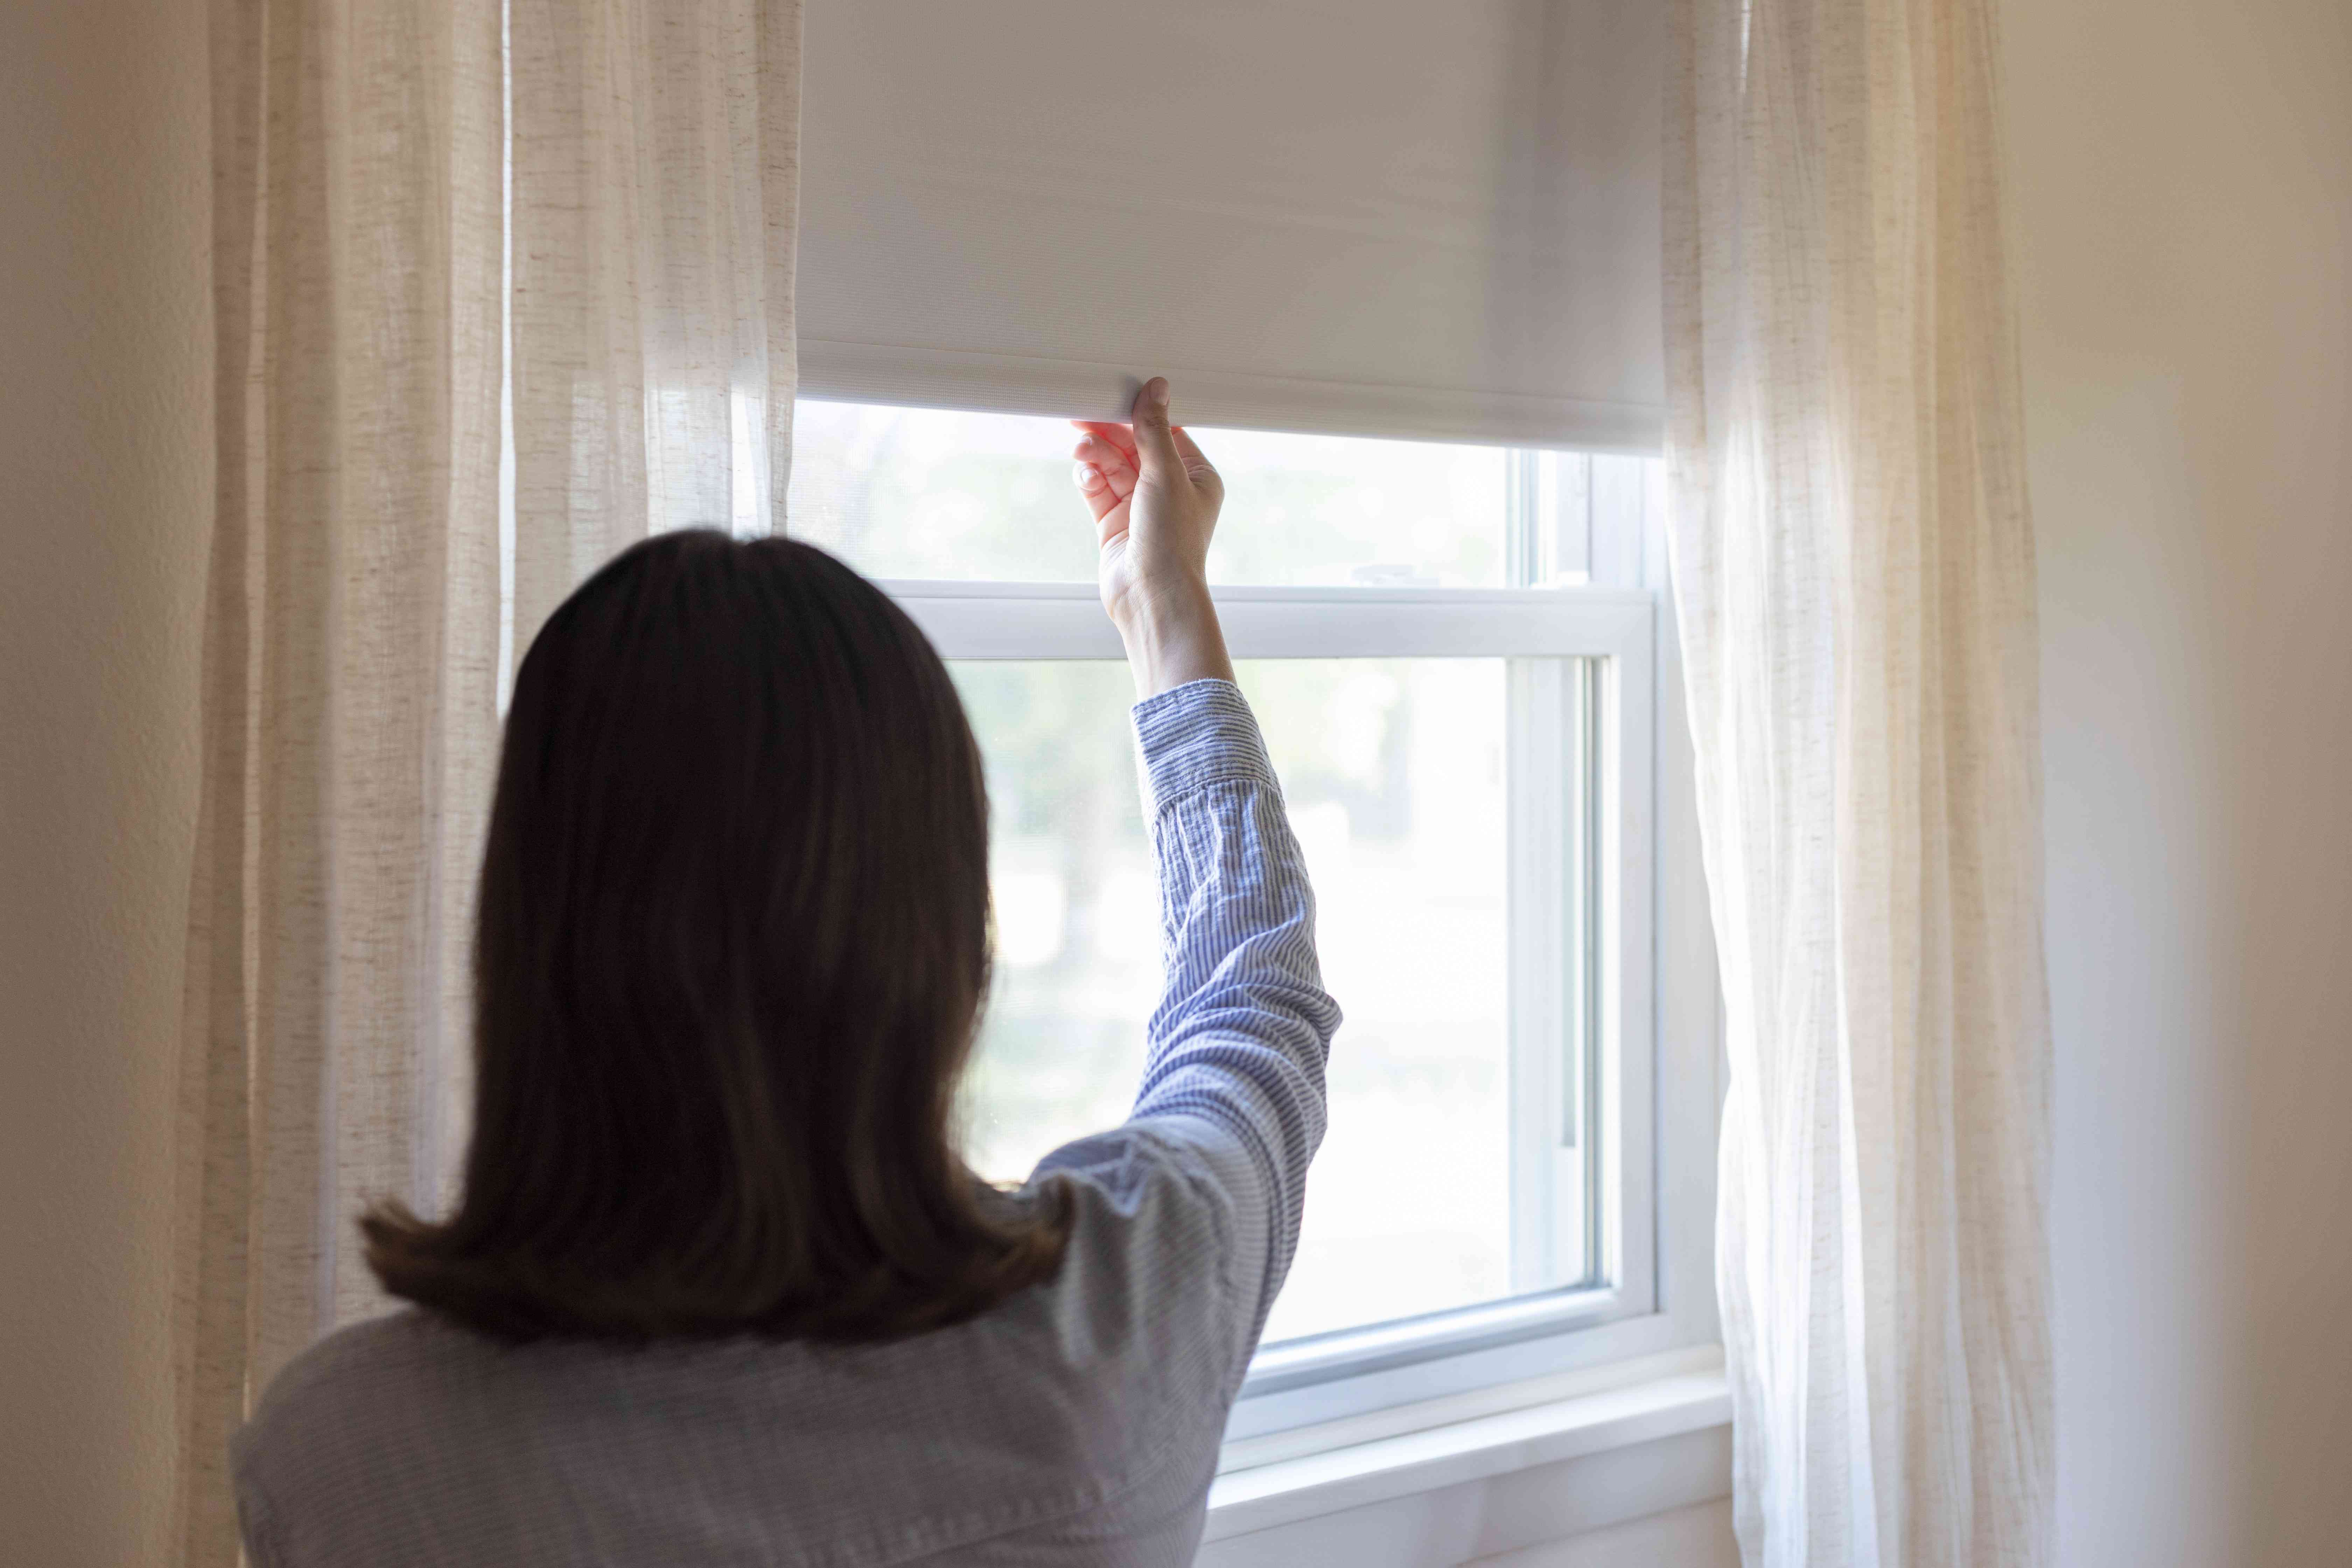 Window blinds being pulled down to lower electric bill